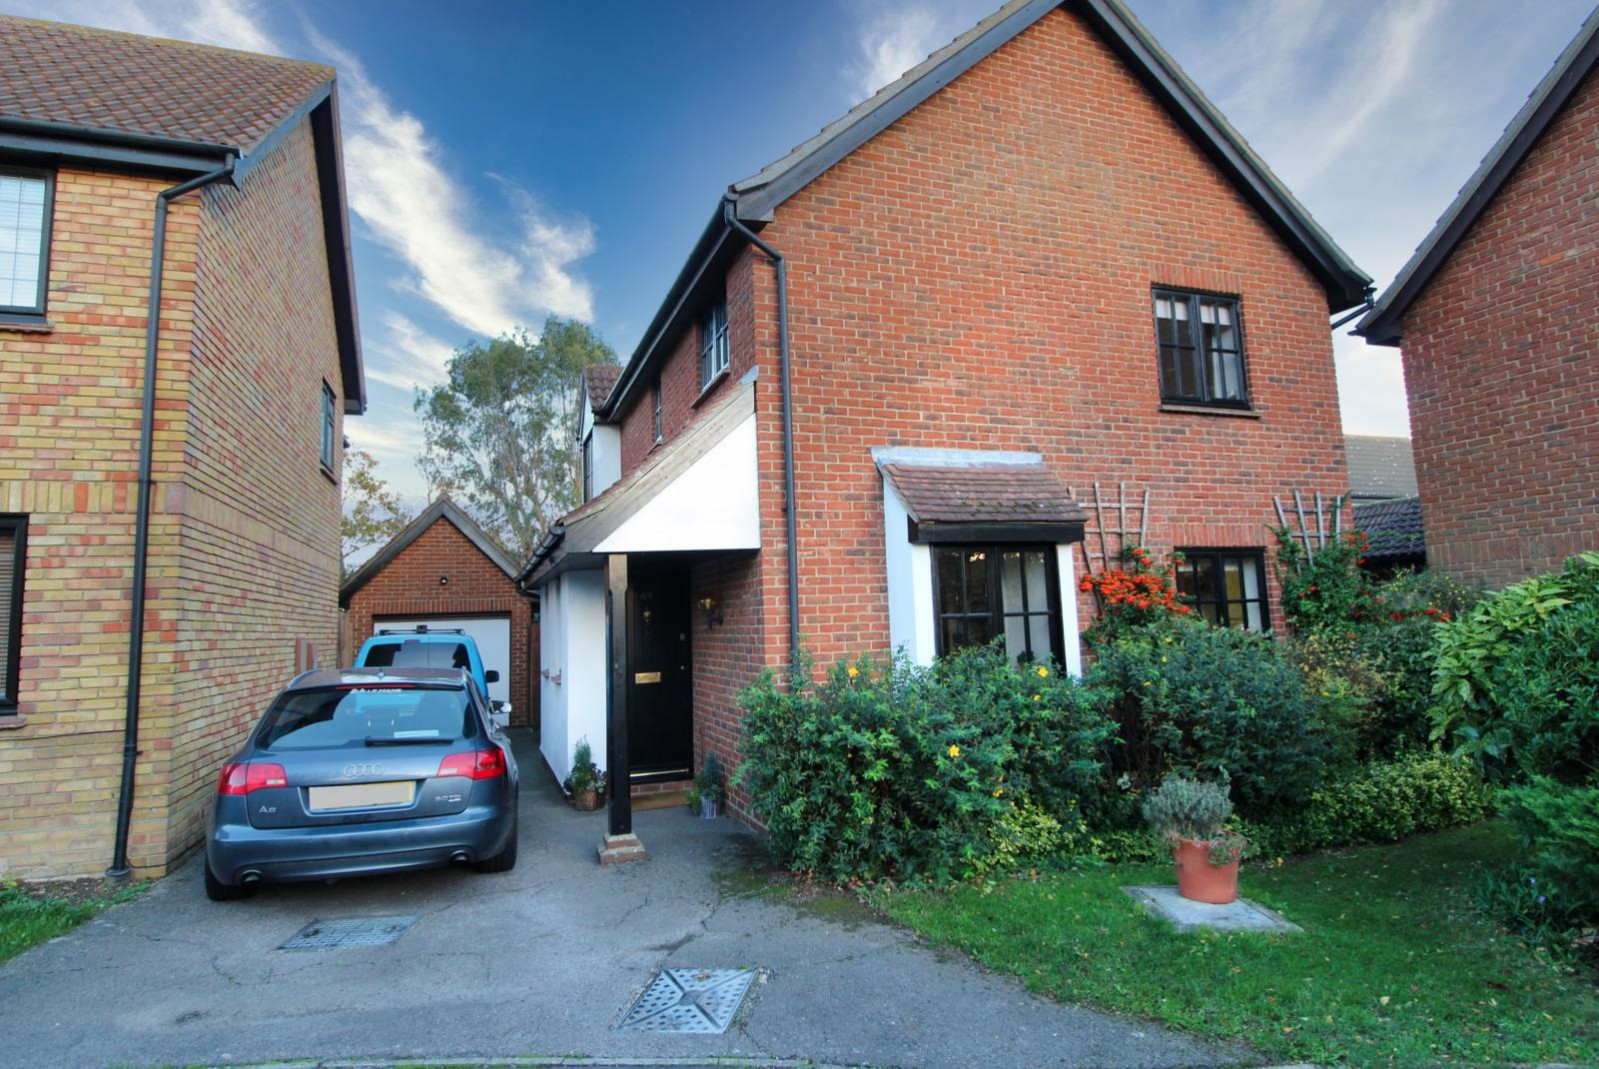 Petresfield Way, West Horndon, Brentwood, Essex, CM13